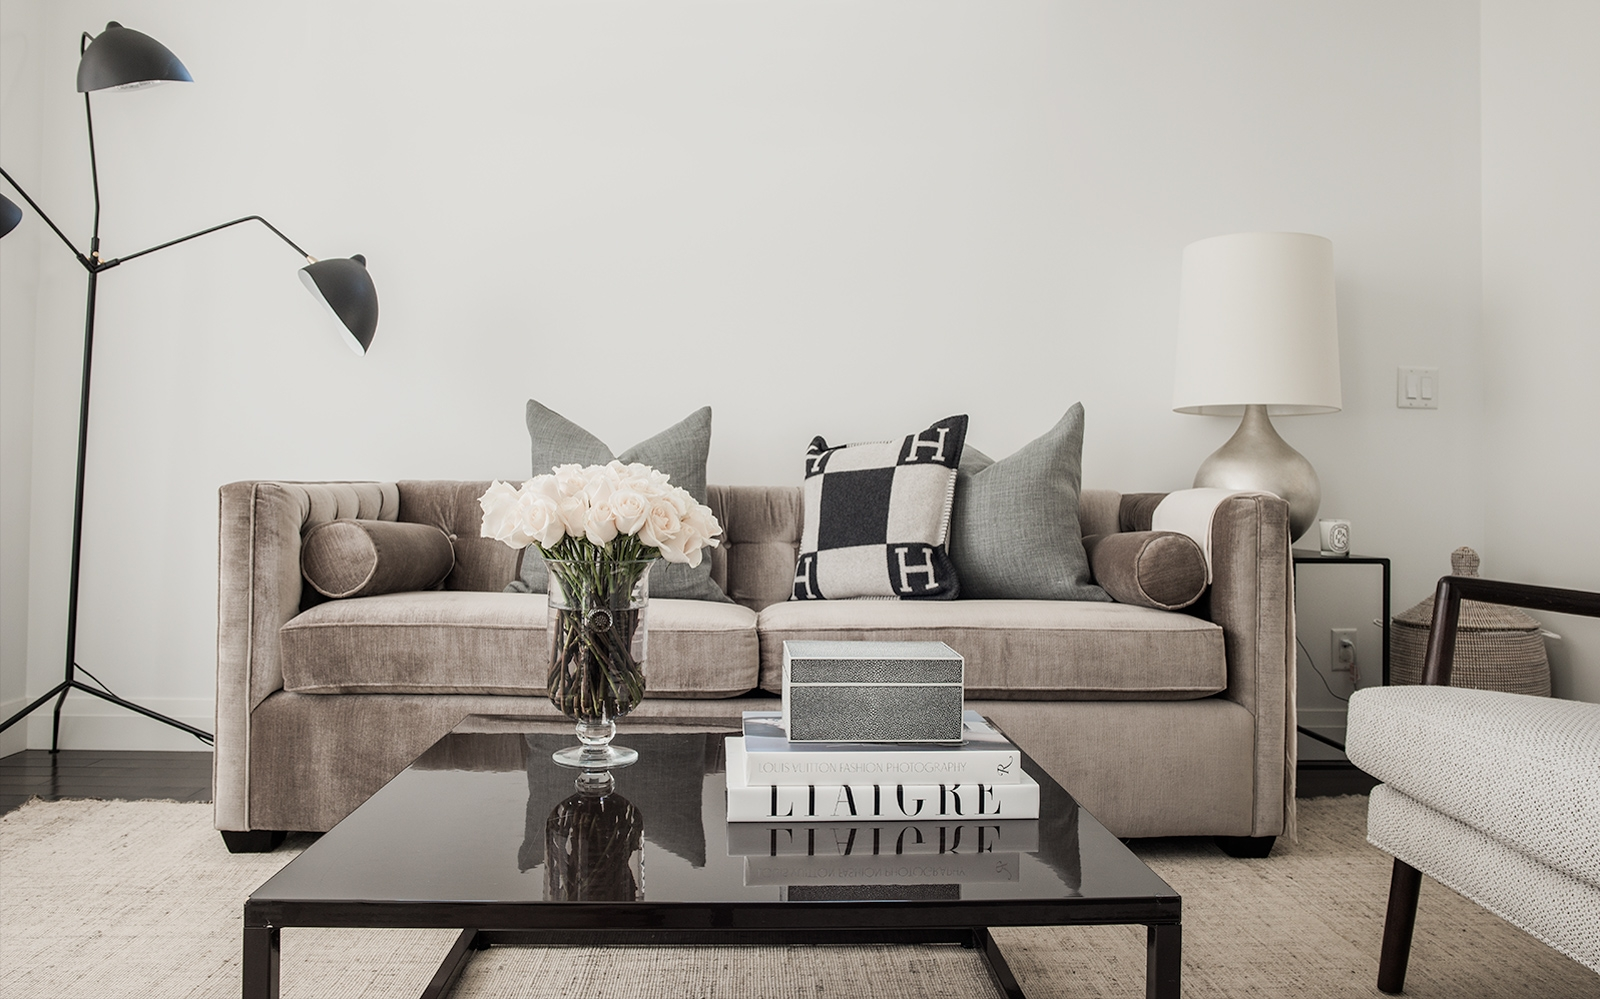 Morgan Kelly interiors living room couch and hermes cushion